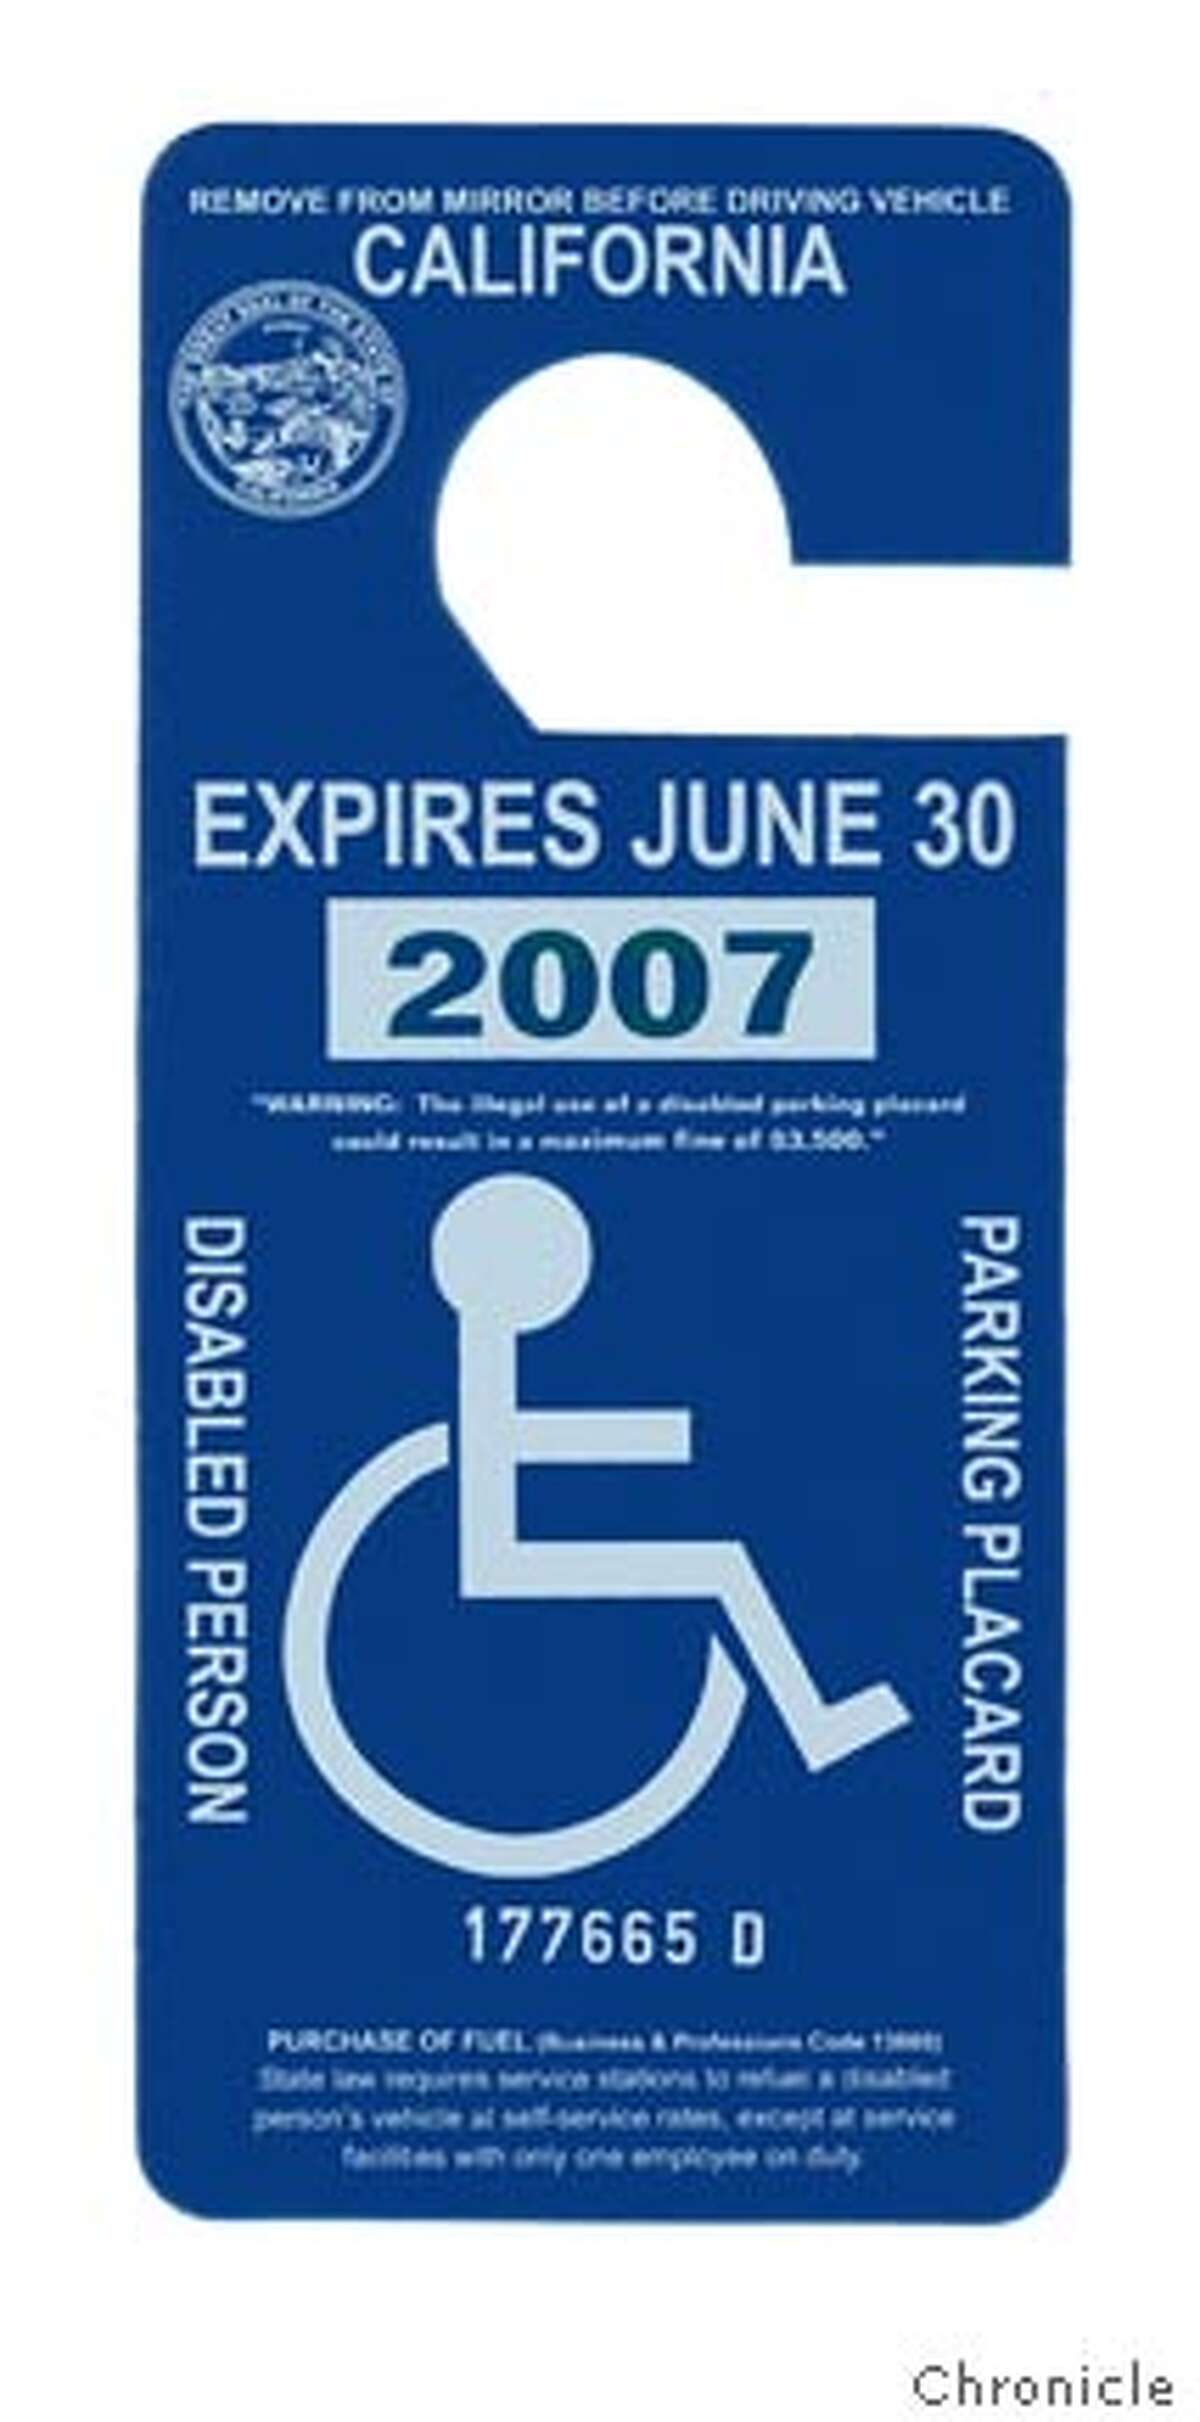 2007 California Disabled Person Parking Placard. SAN FRANCISCO CHRONICLE. FOR ILLUSTRATION PURPOSES ONLY. NO WEB, , NO TV. Ran on: 01-26-2007 Calif- ornias placard for people with disabilities Ran on: 01-26-2007 The states placard for people with disabilities Ran on: 01-26-2007